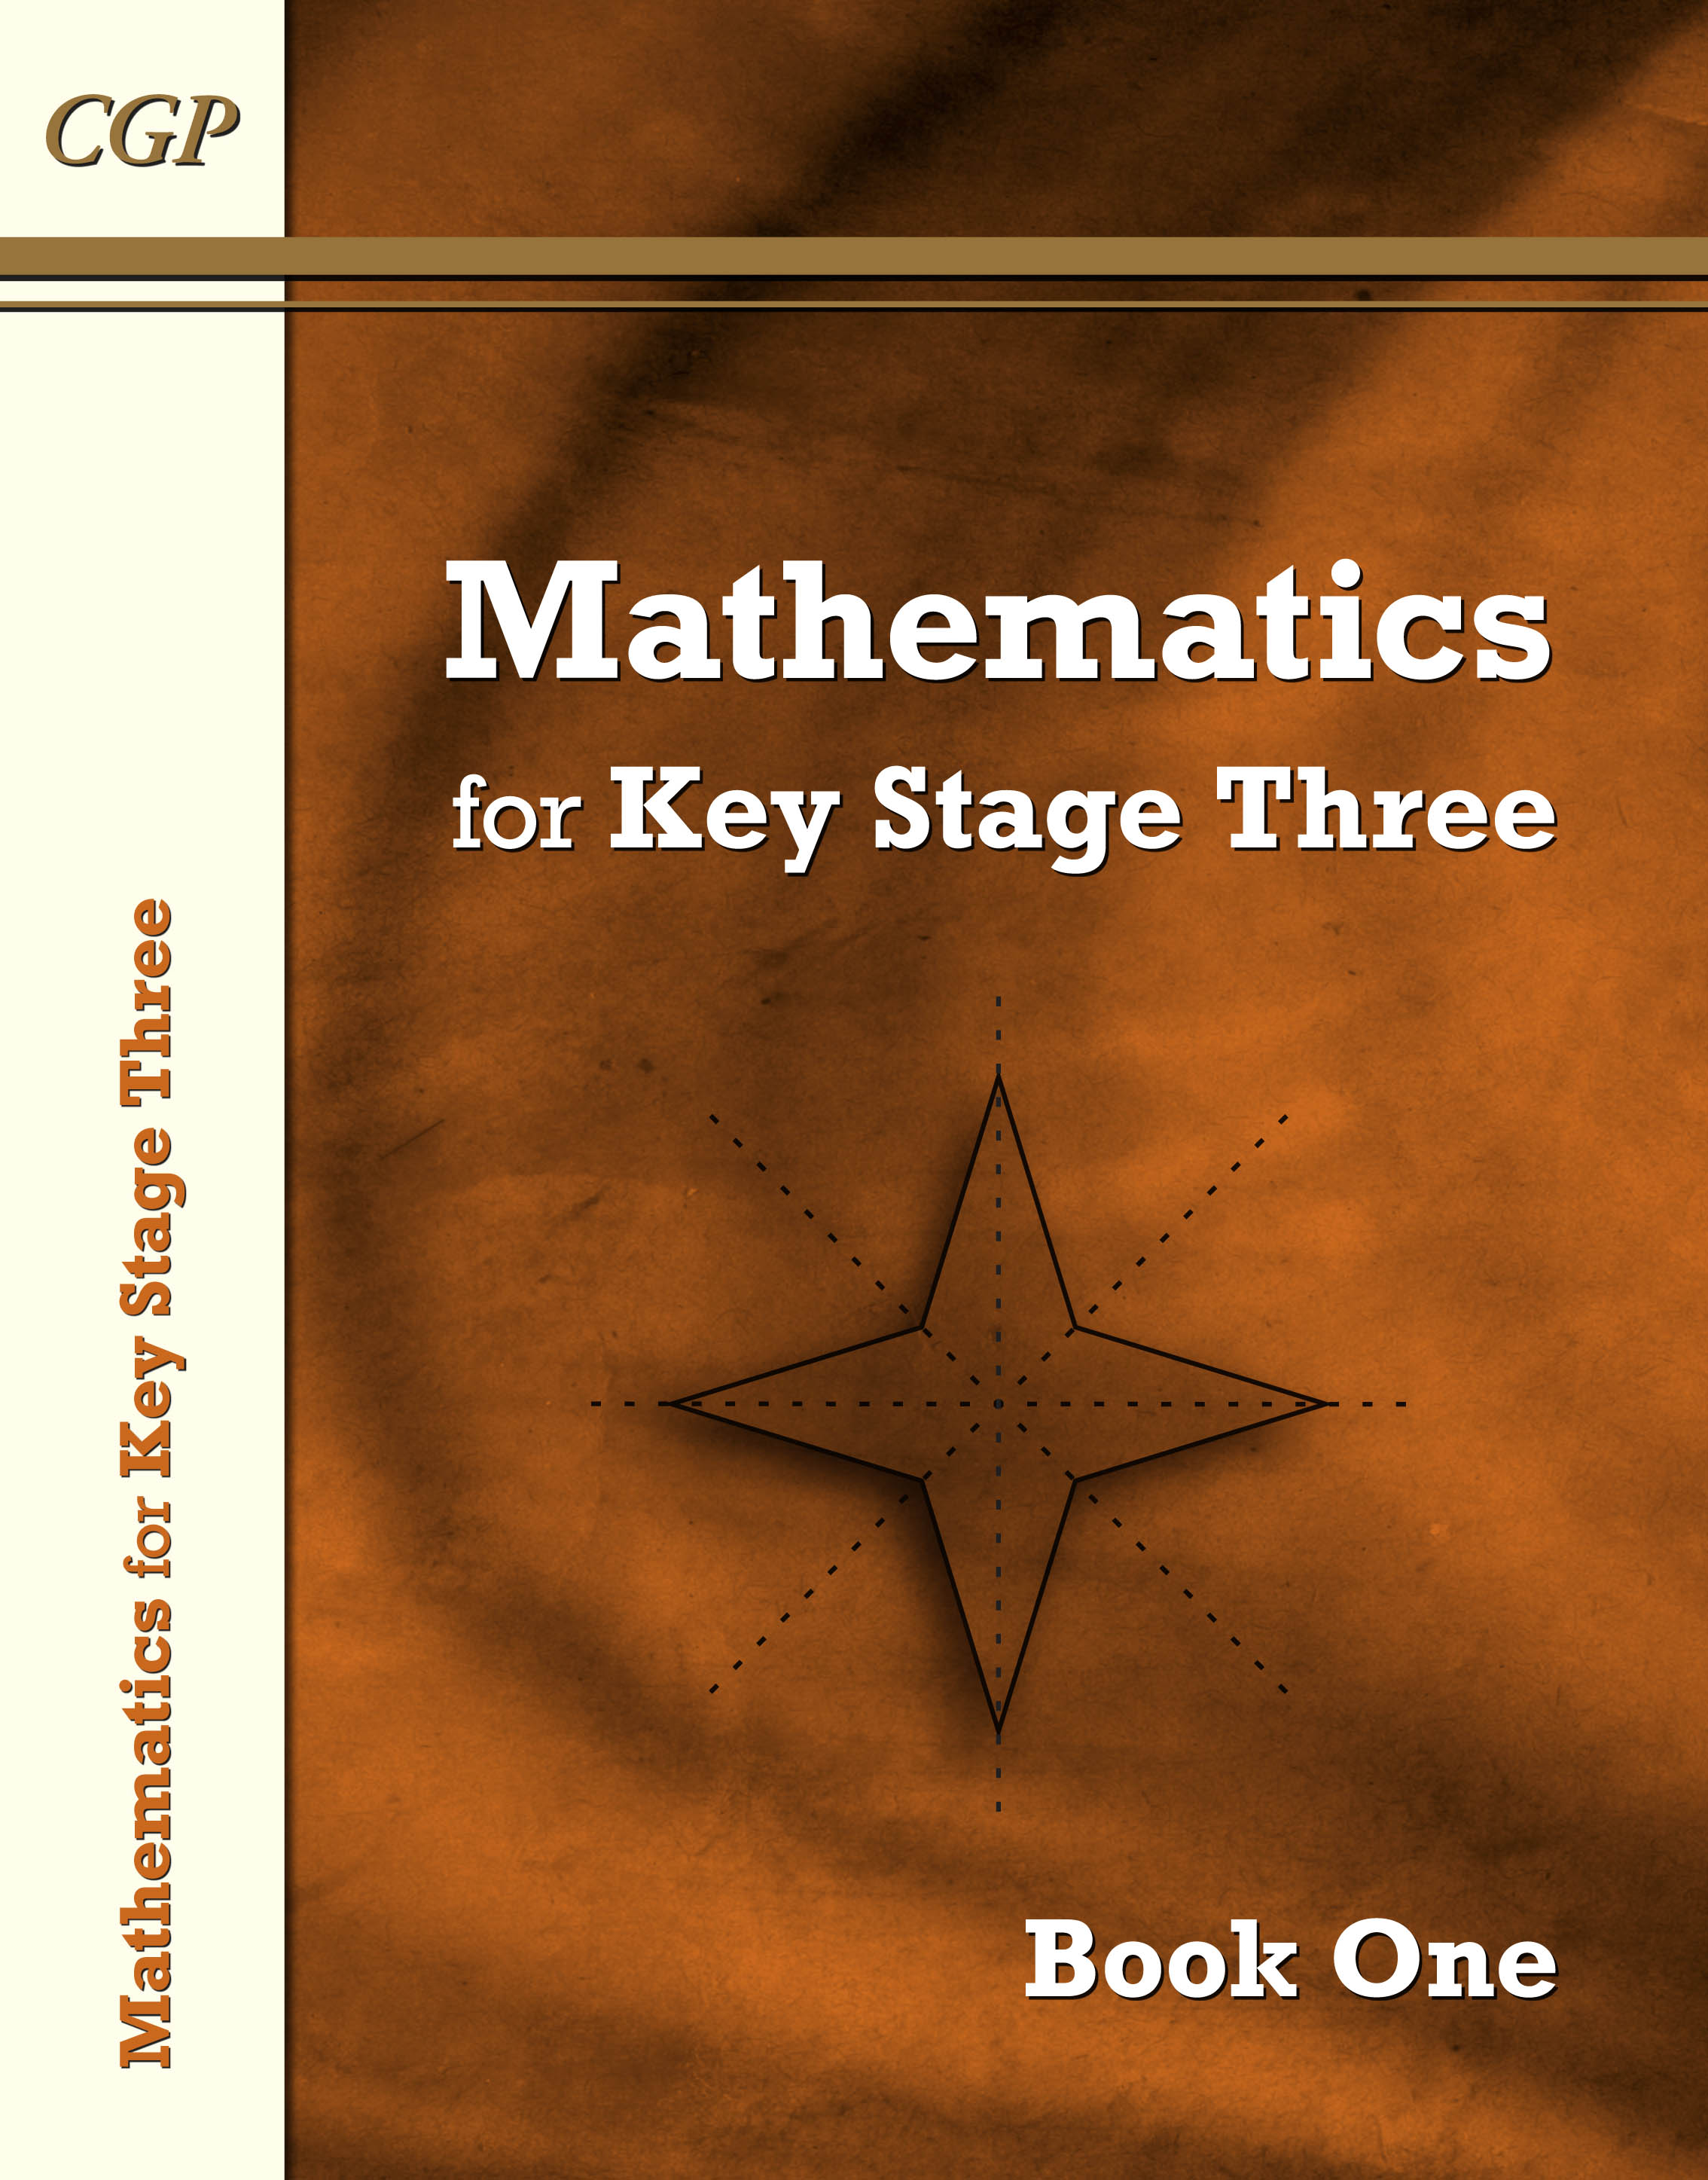 M1NN31DK - KS3 Maths Textbook 1